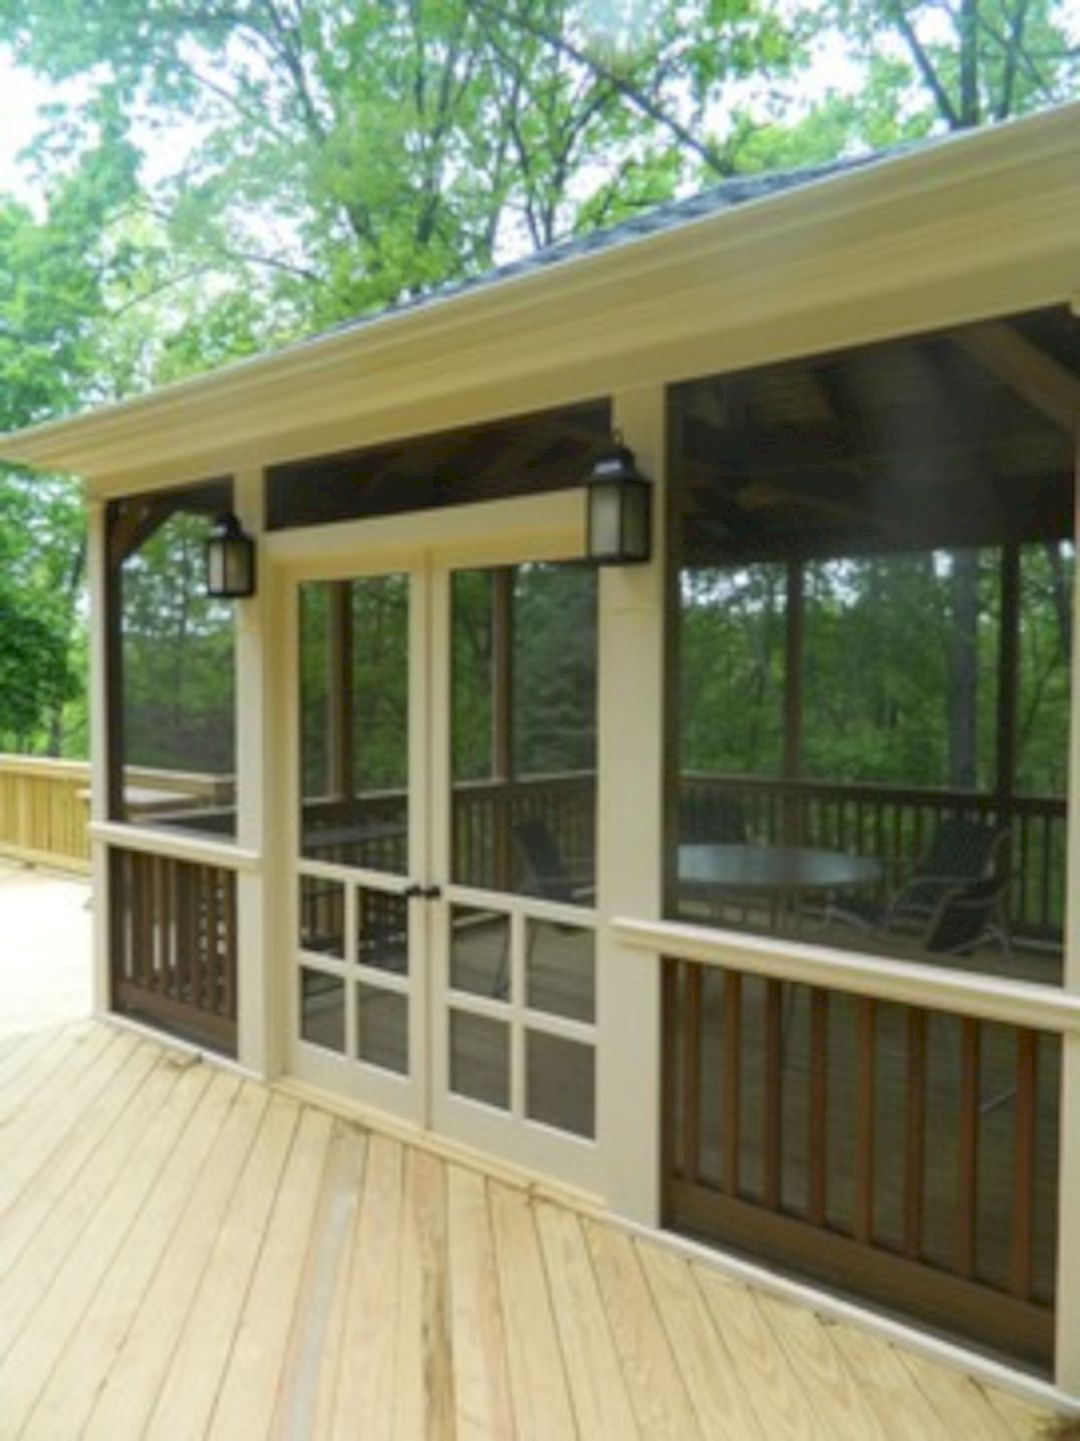 8 ways to have more appealing screened porch deck porch for Screened in porch ideas design